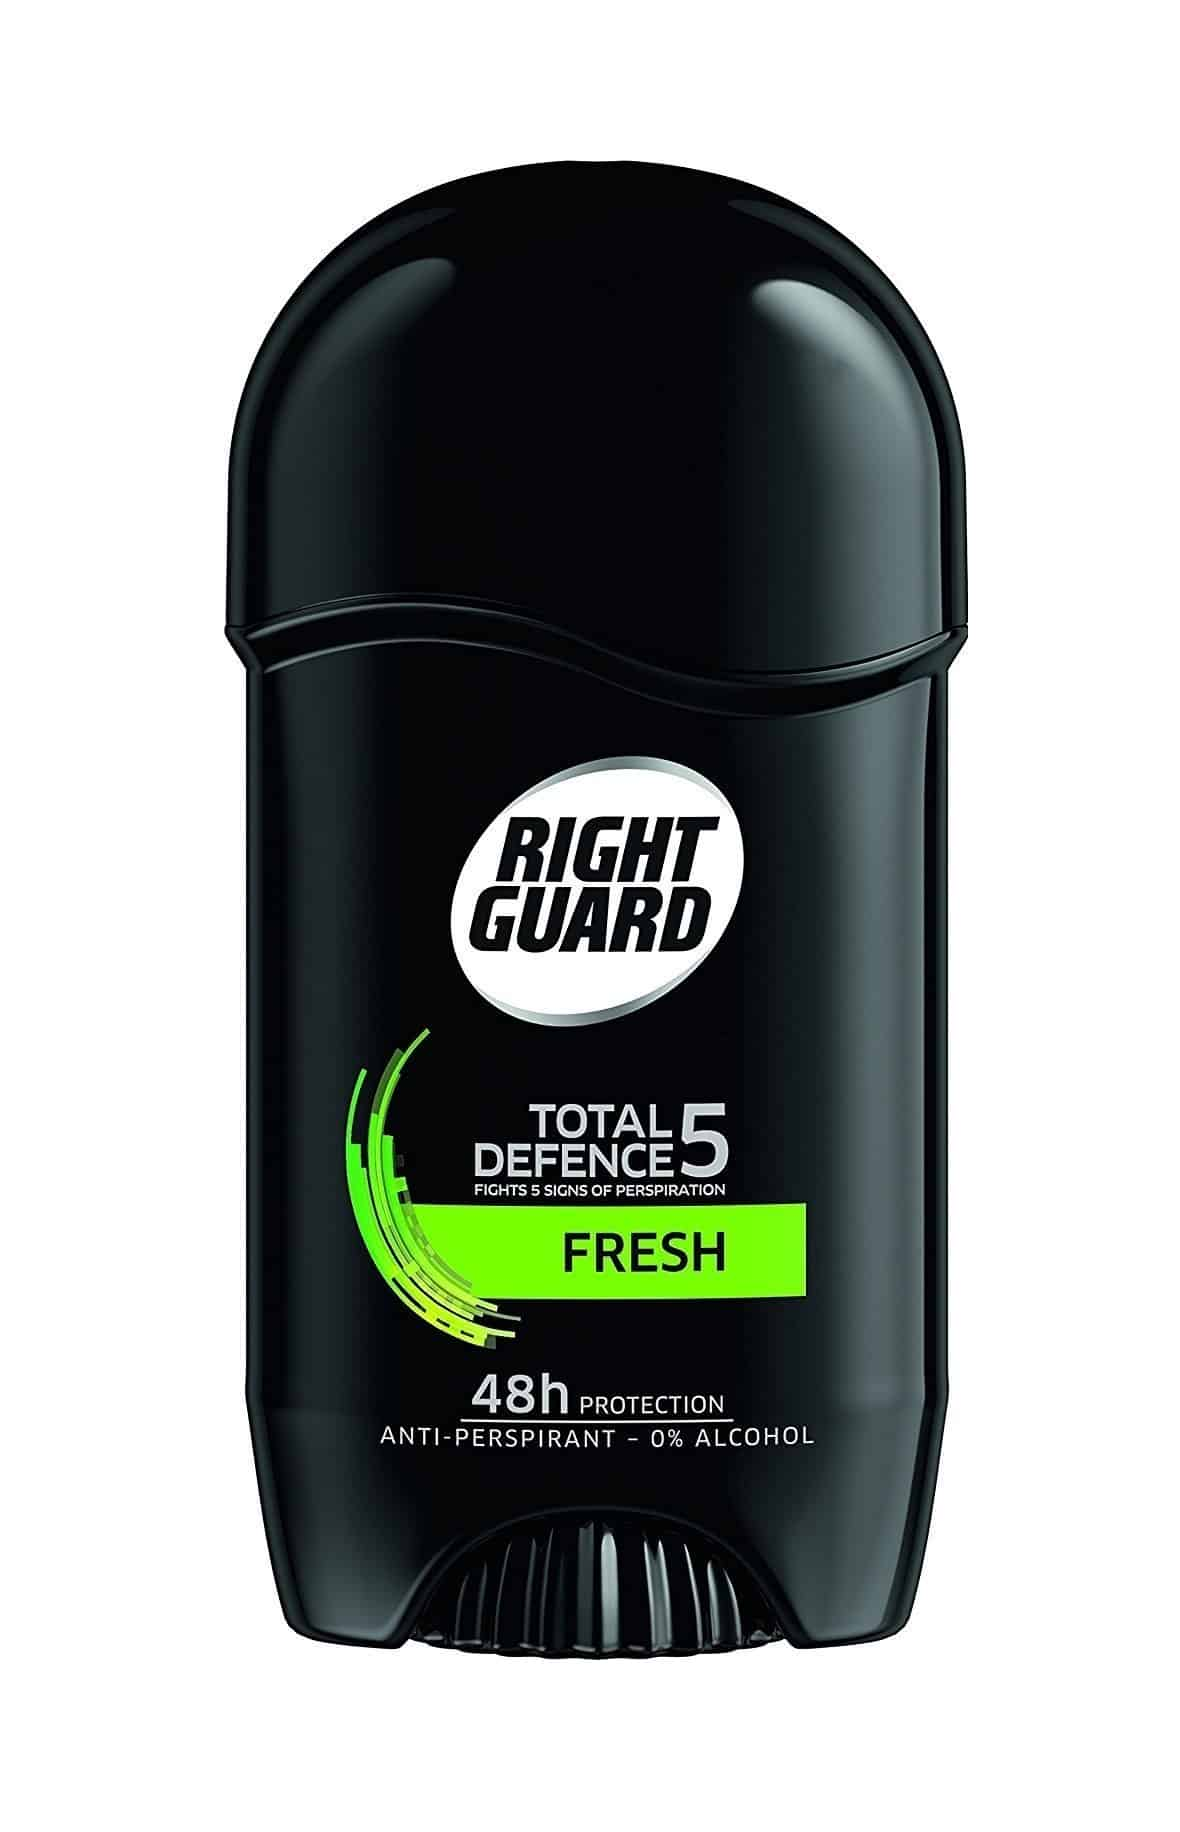 Right Guard Total Defence 5 Fresh